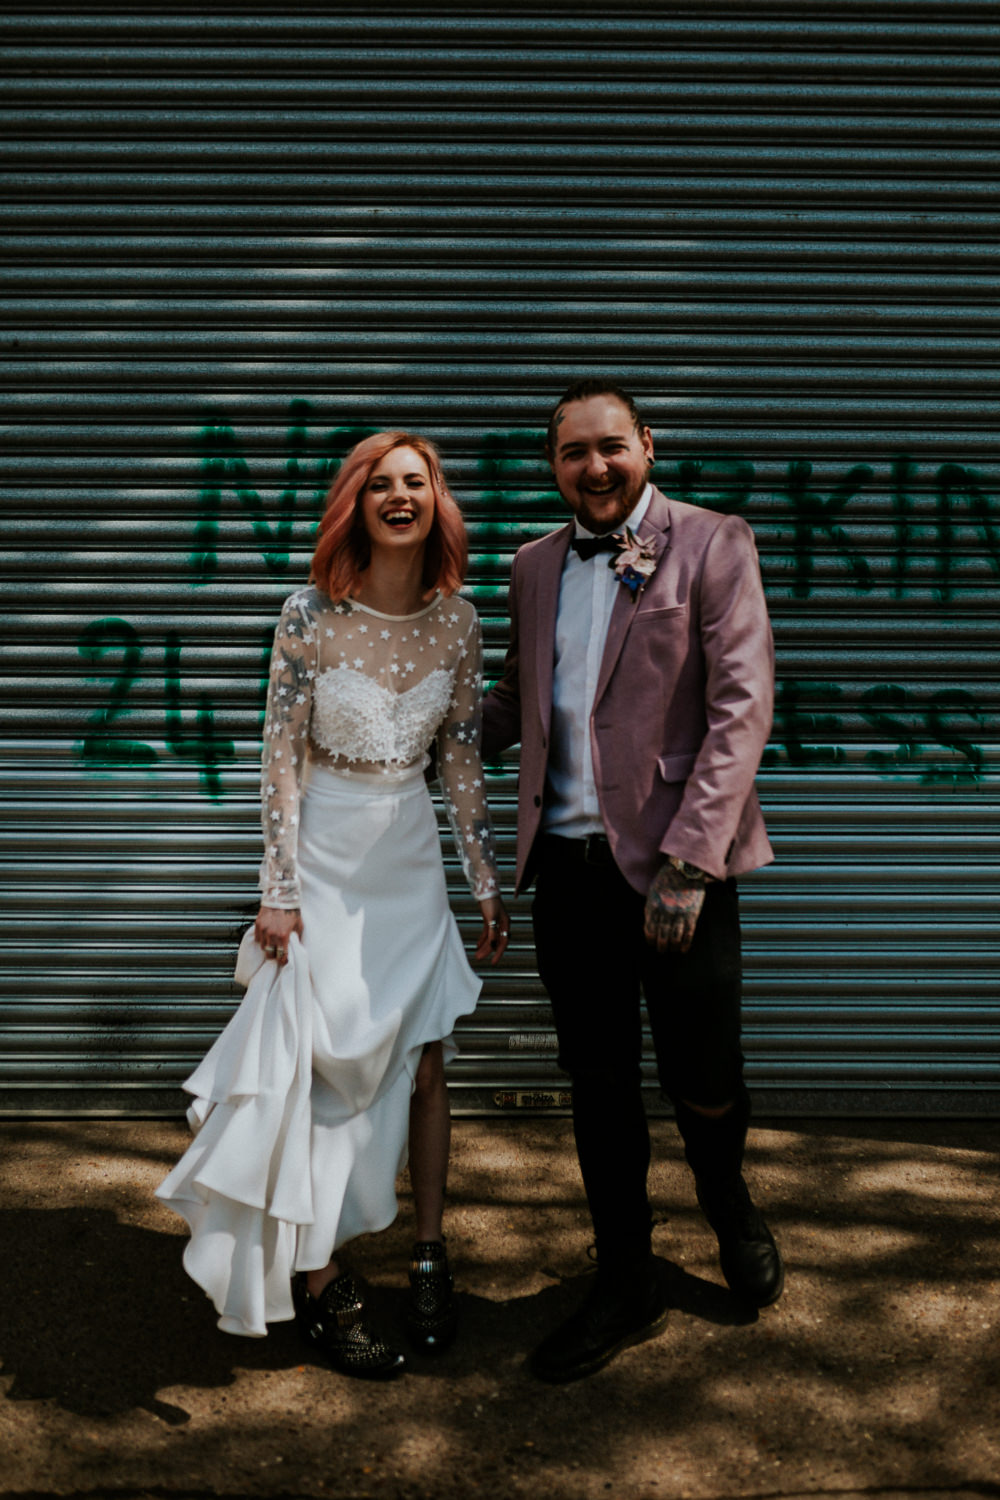 Neon Sign Wedding Ideas State Of Love and Trust Photography